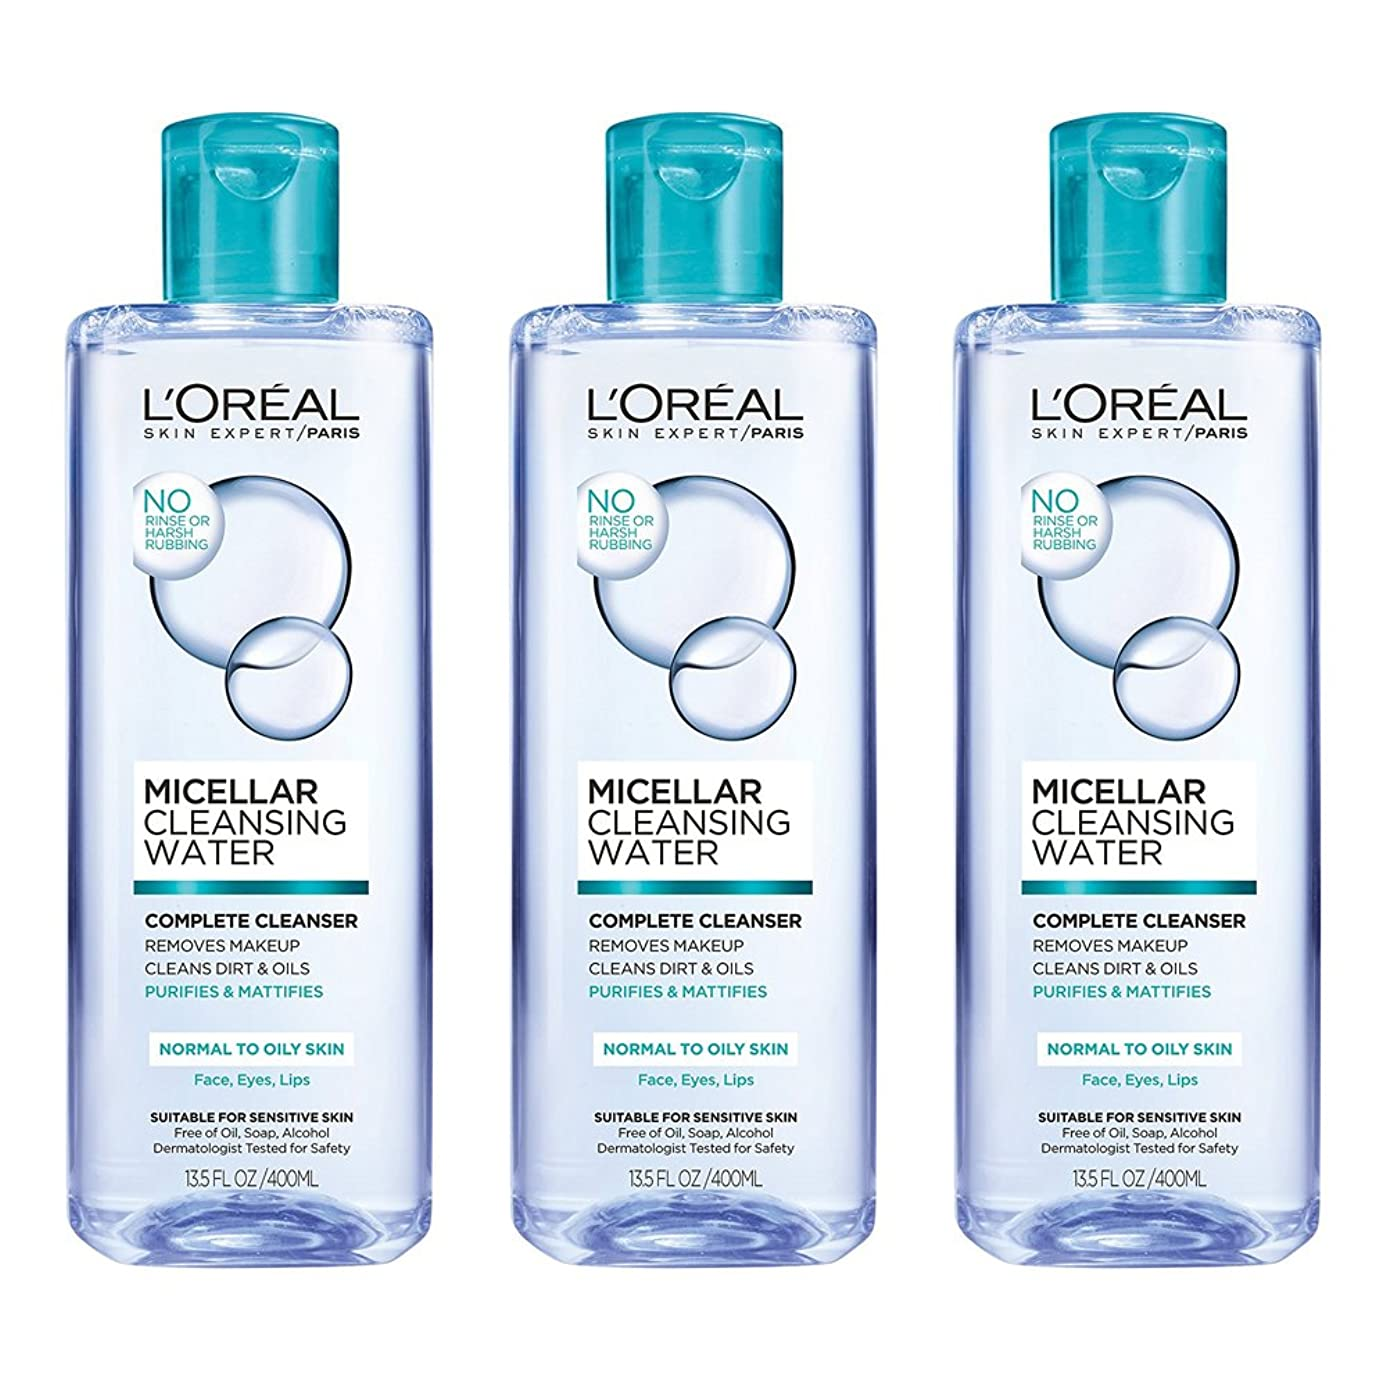 L'Oreal Paris Micellar Cleansing Water, Oily Skin Facial Cleanser & Makeup Remover, 3 count